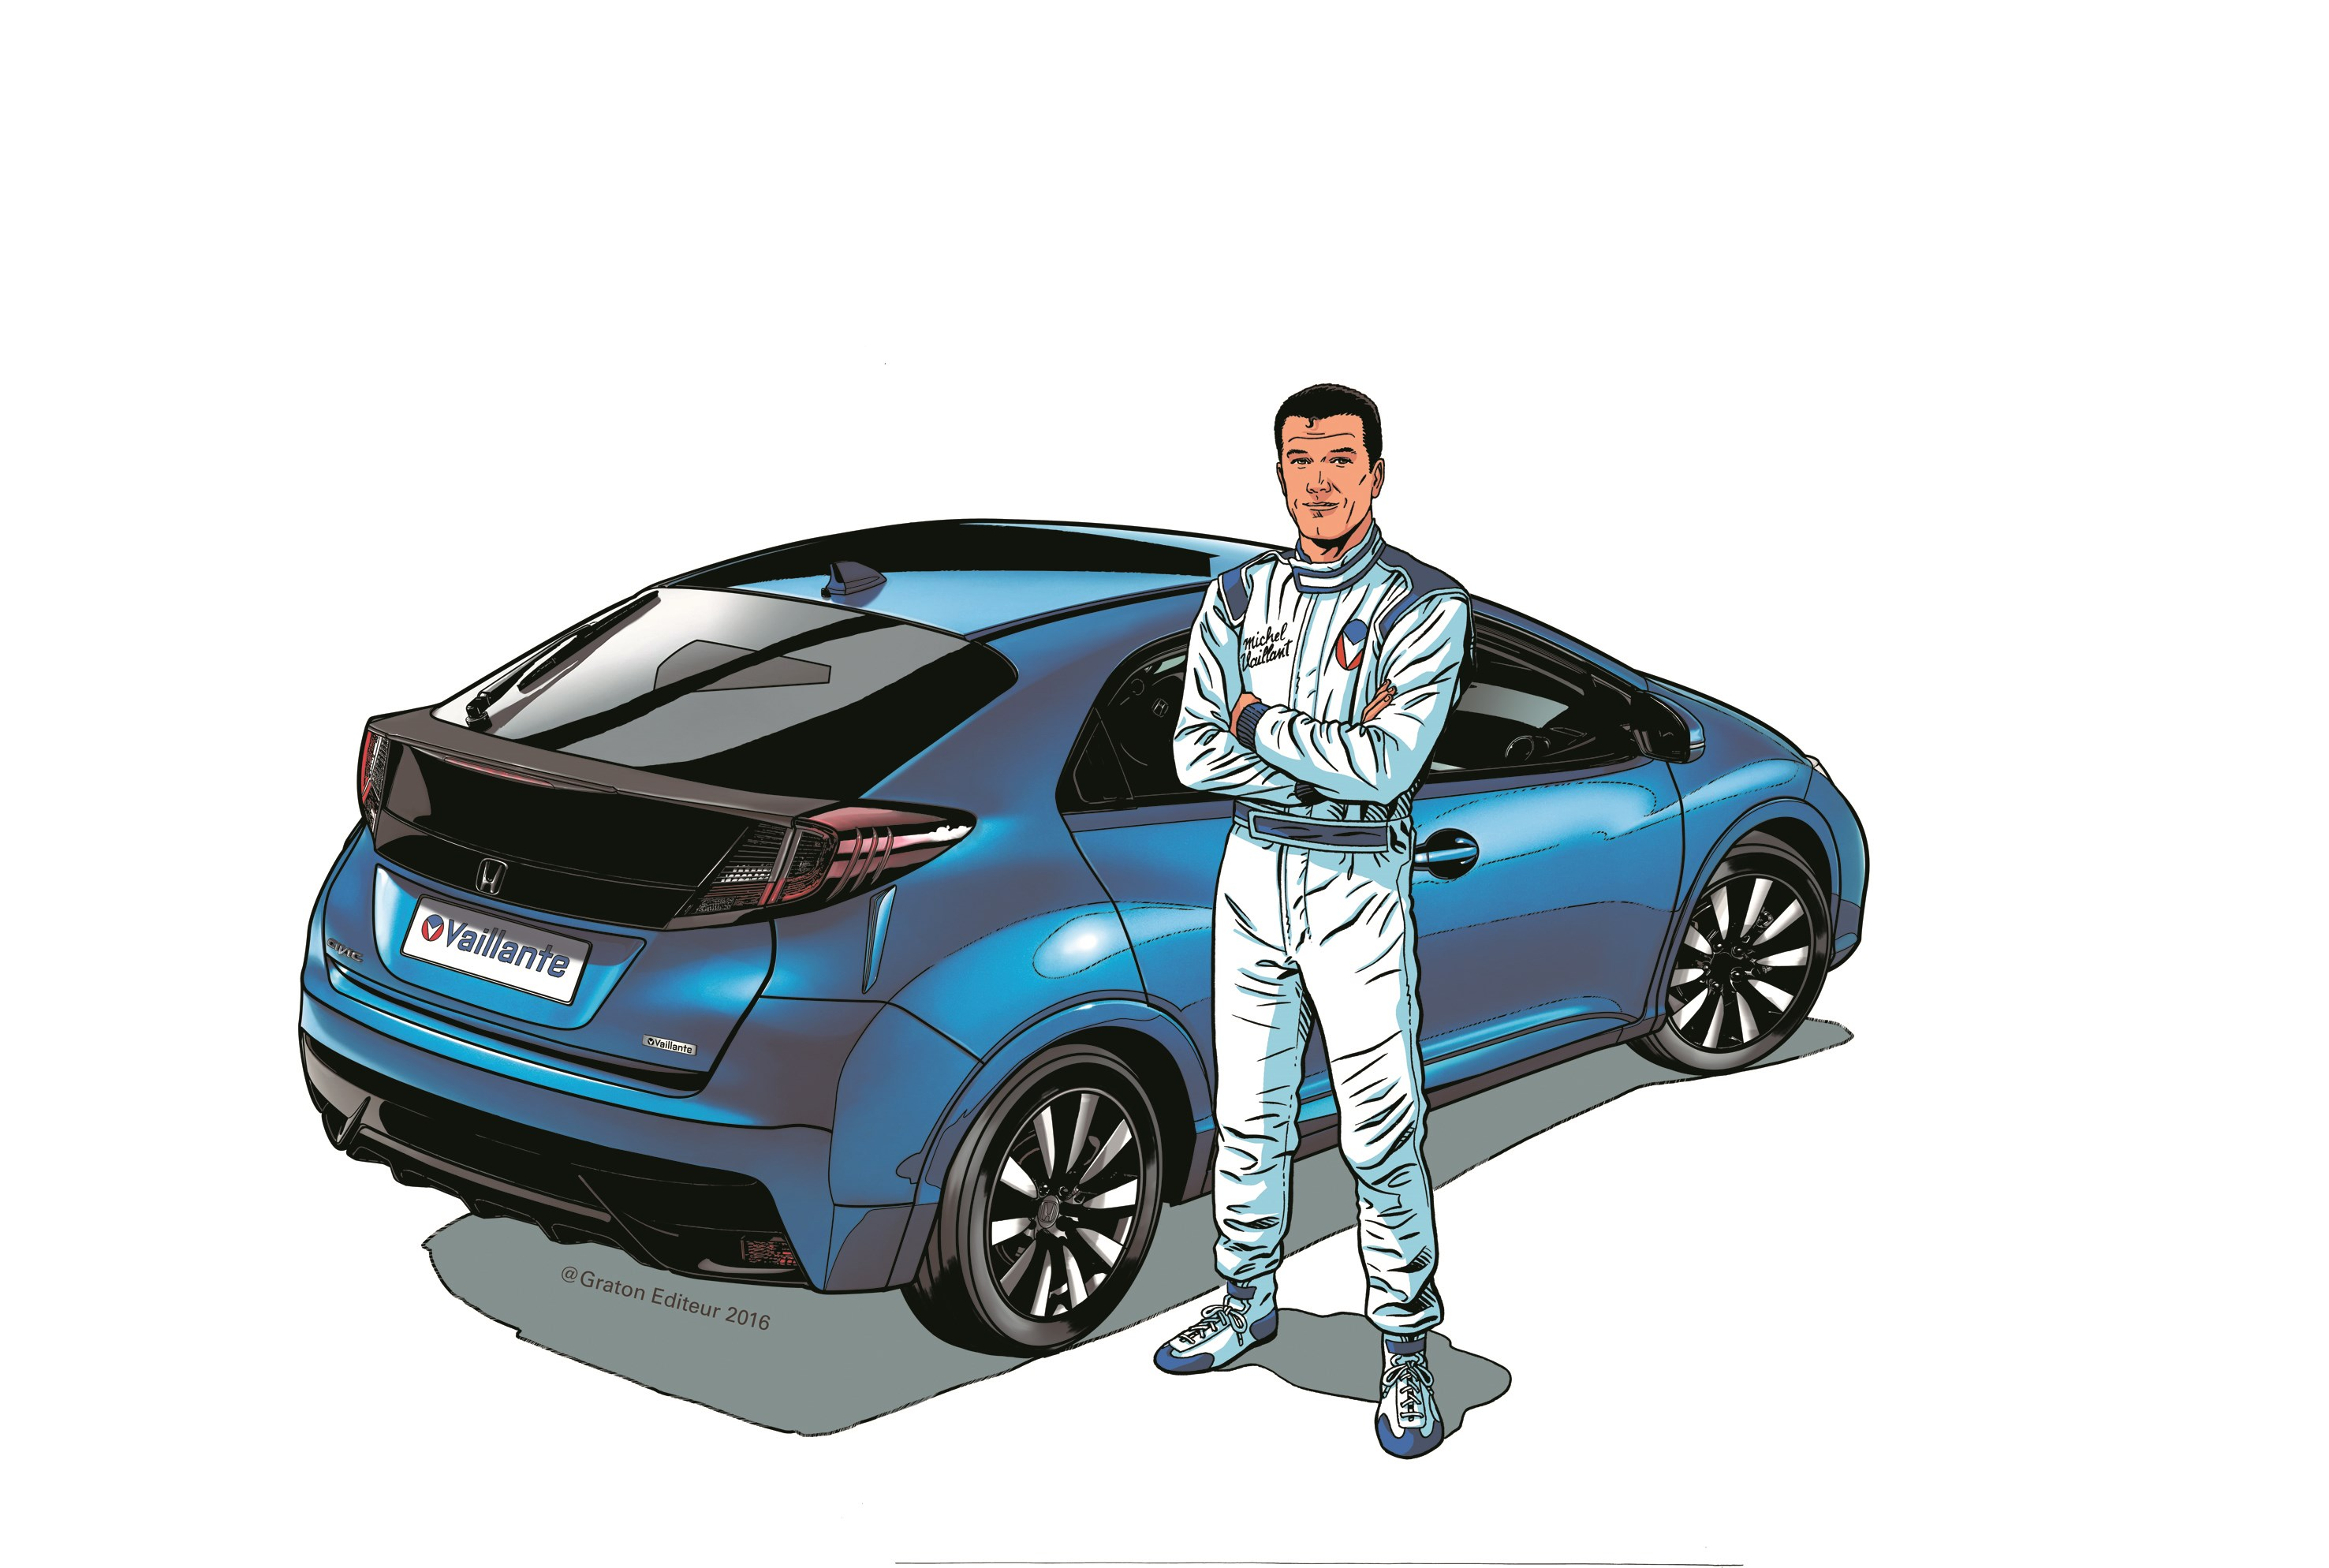 Honda Civic Vaillante - 2016 - rear - drawing